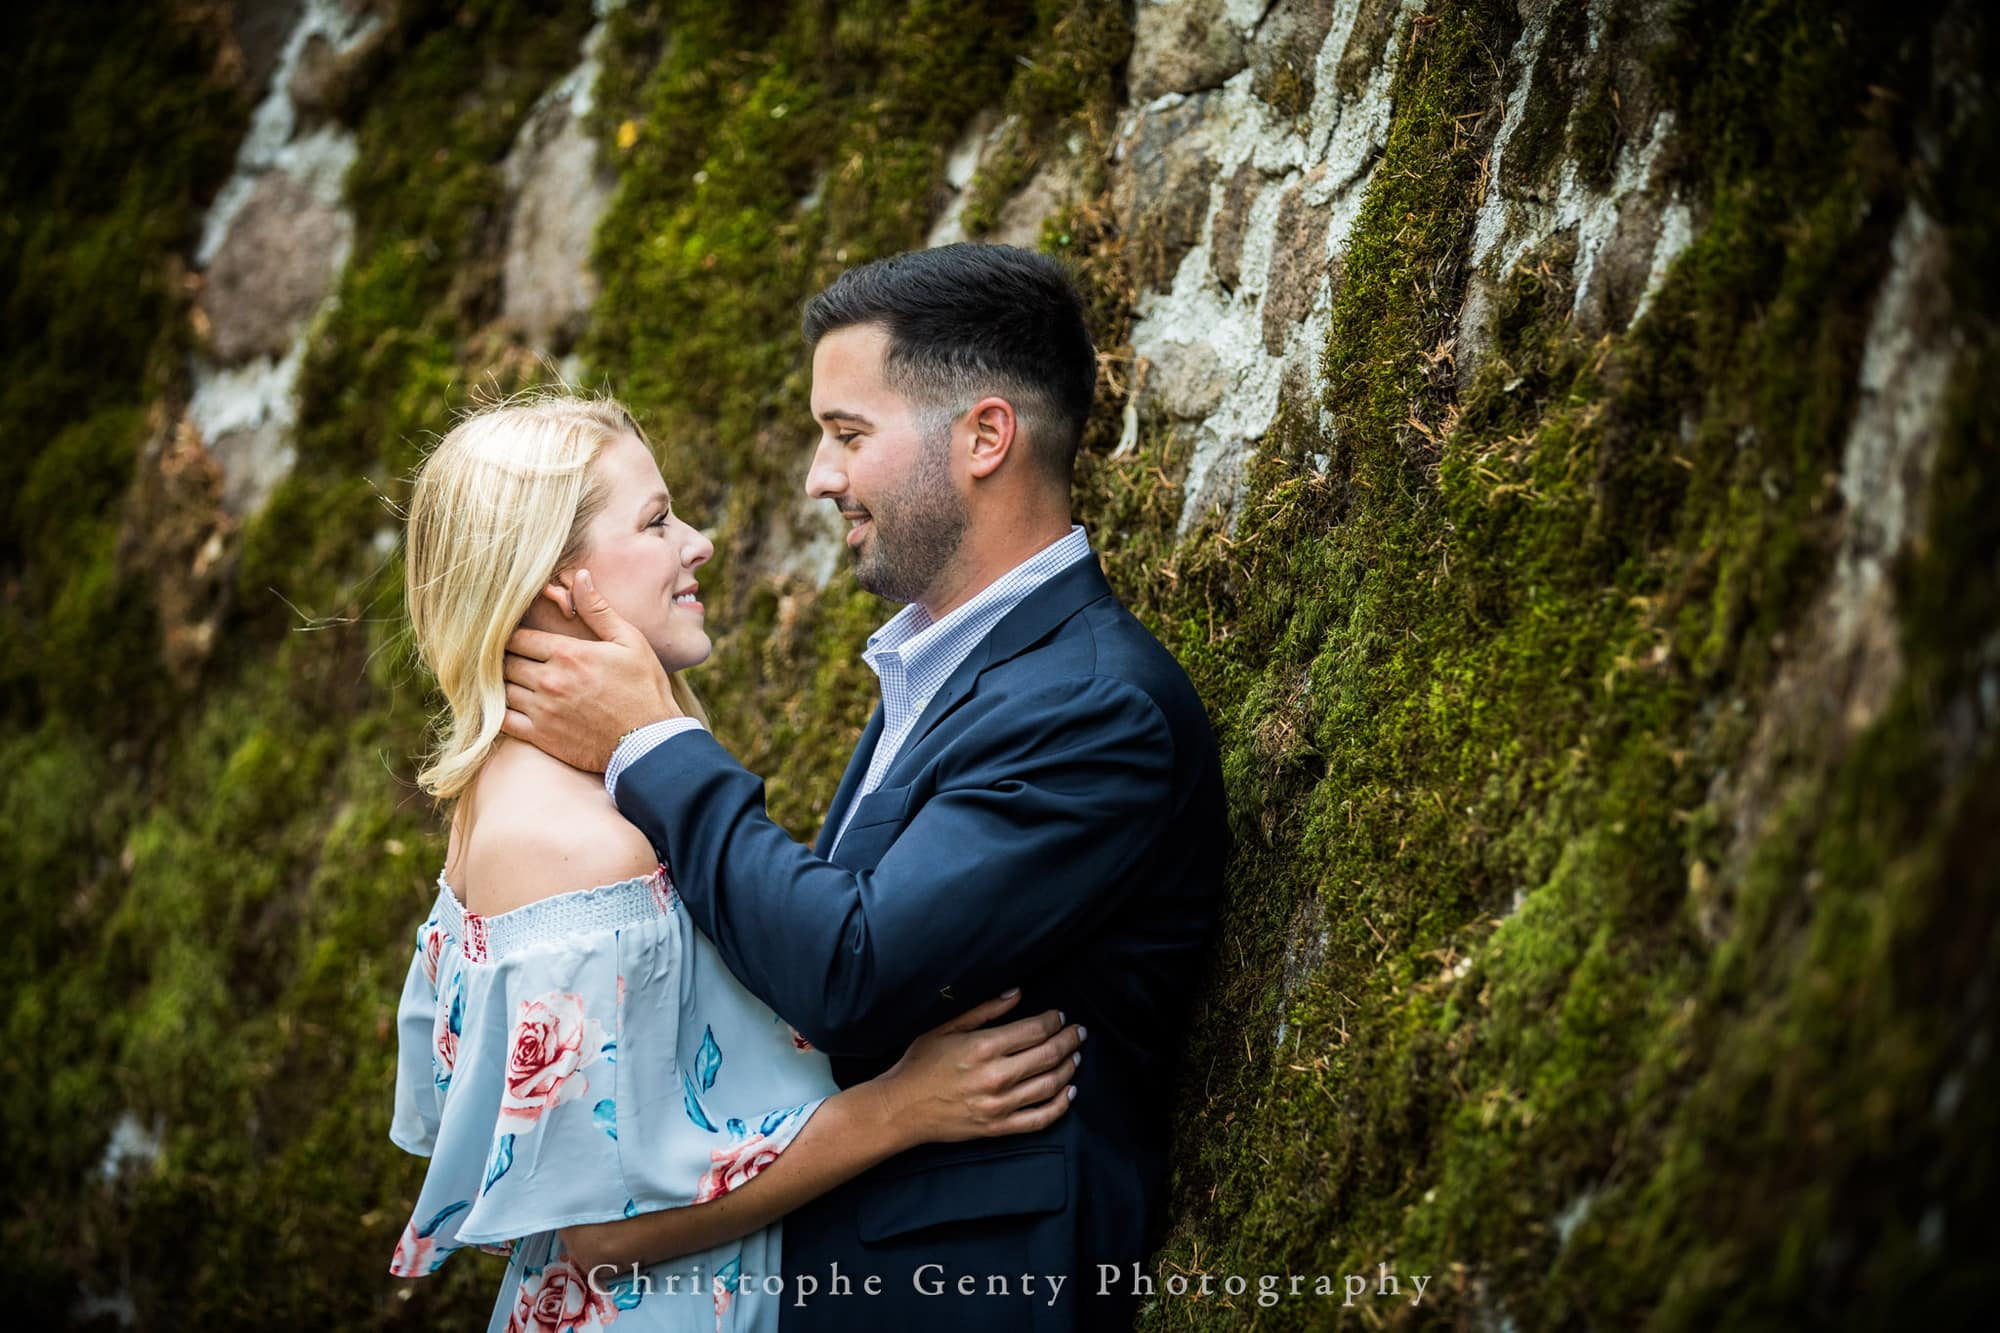 Marriage Proposal Photography in Napa -1026